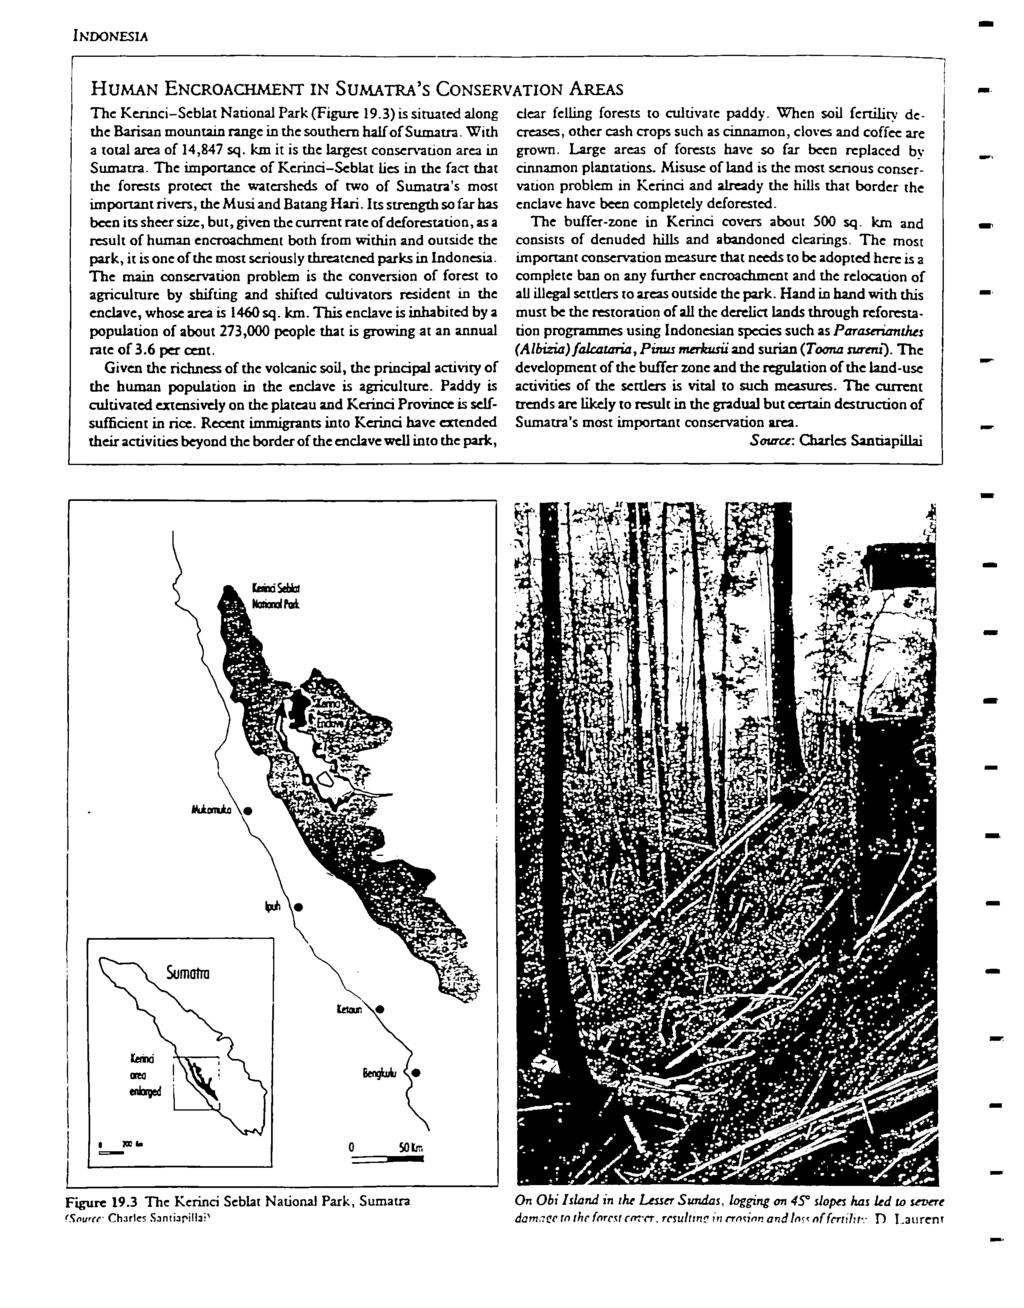 NDONESA HUMAN ENCROACHMENT N SUMATRA'S CONSERVATON.AREAS The KennciSeblat National Pak (Figue 19.3) is situated along the Baisan mountain ange in the southen half of Sumata.